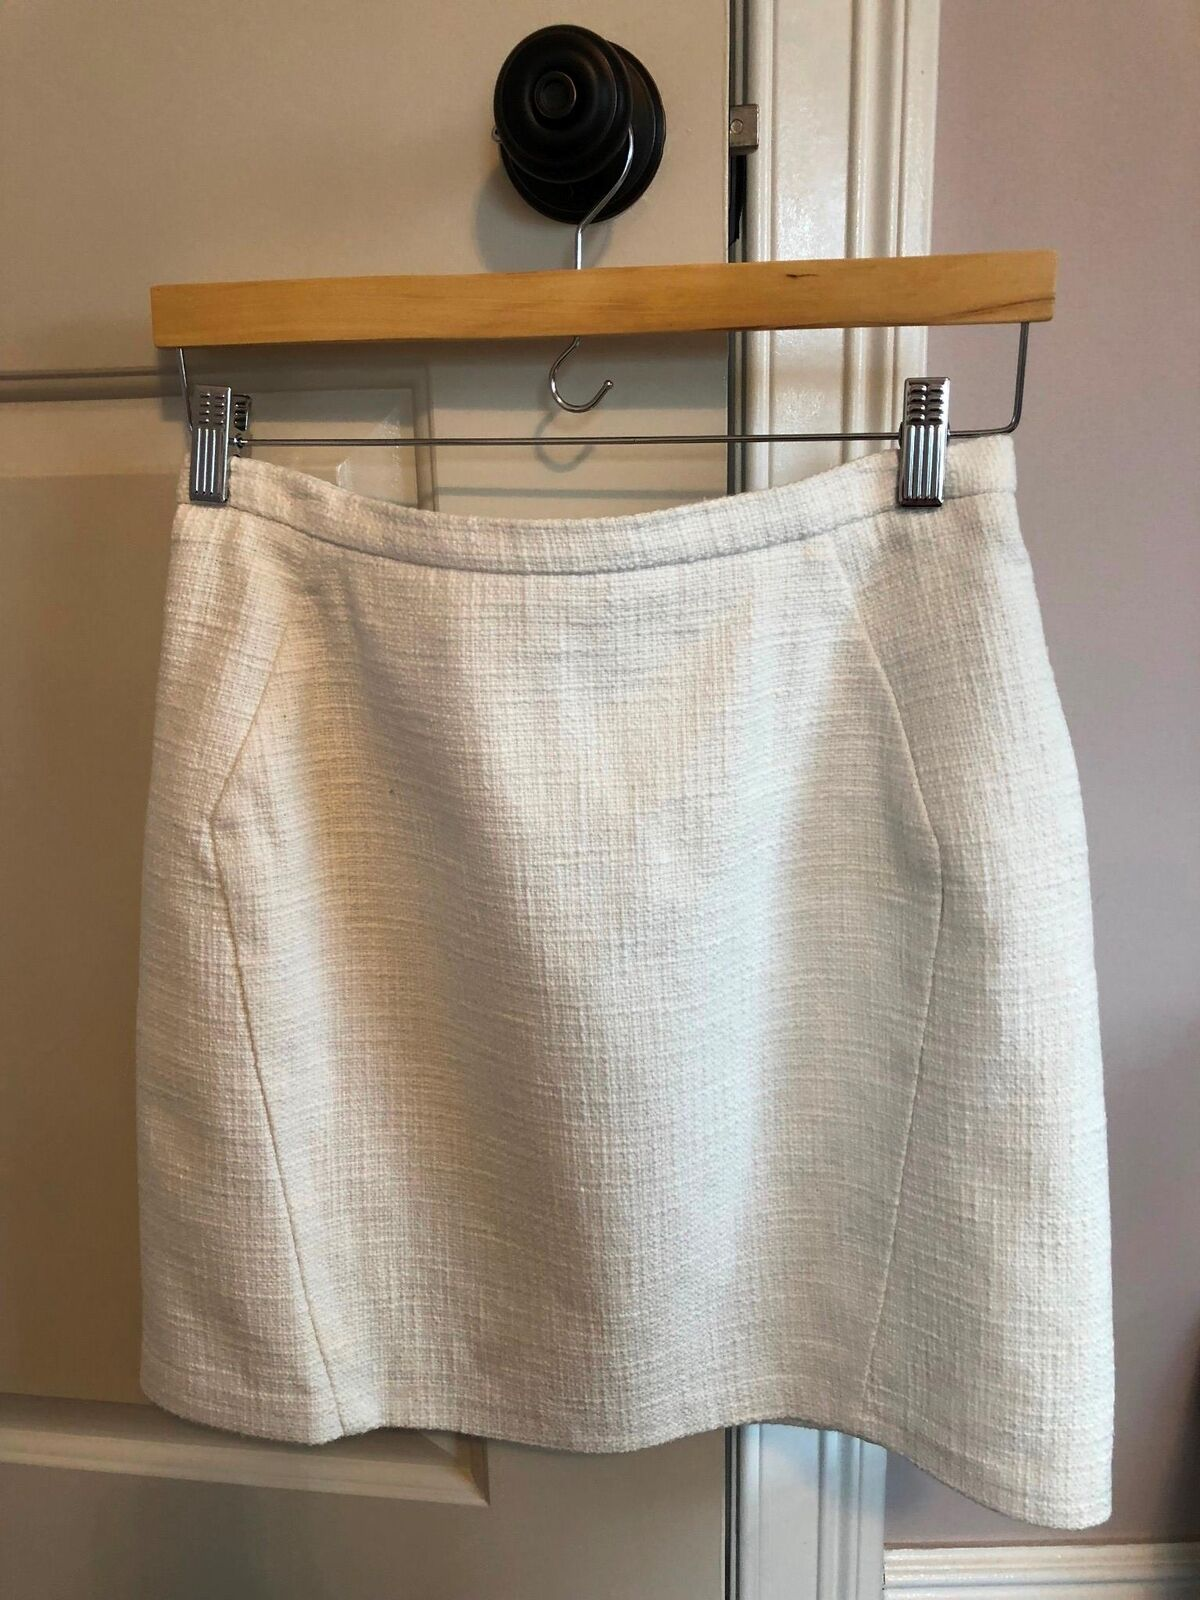 NWOT TOPSHOP White Mini Skirt SZ 8